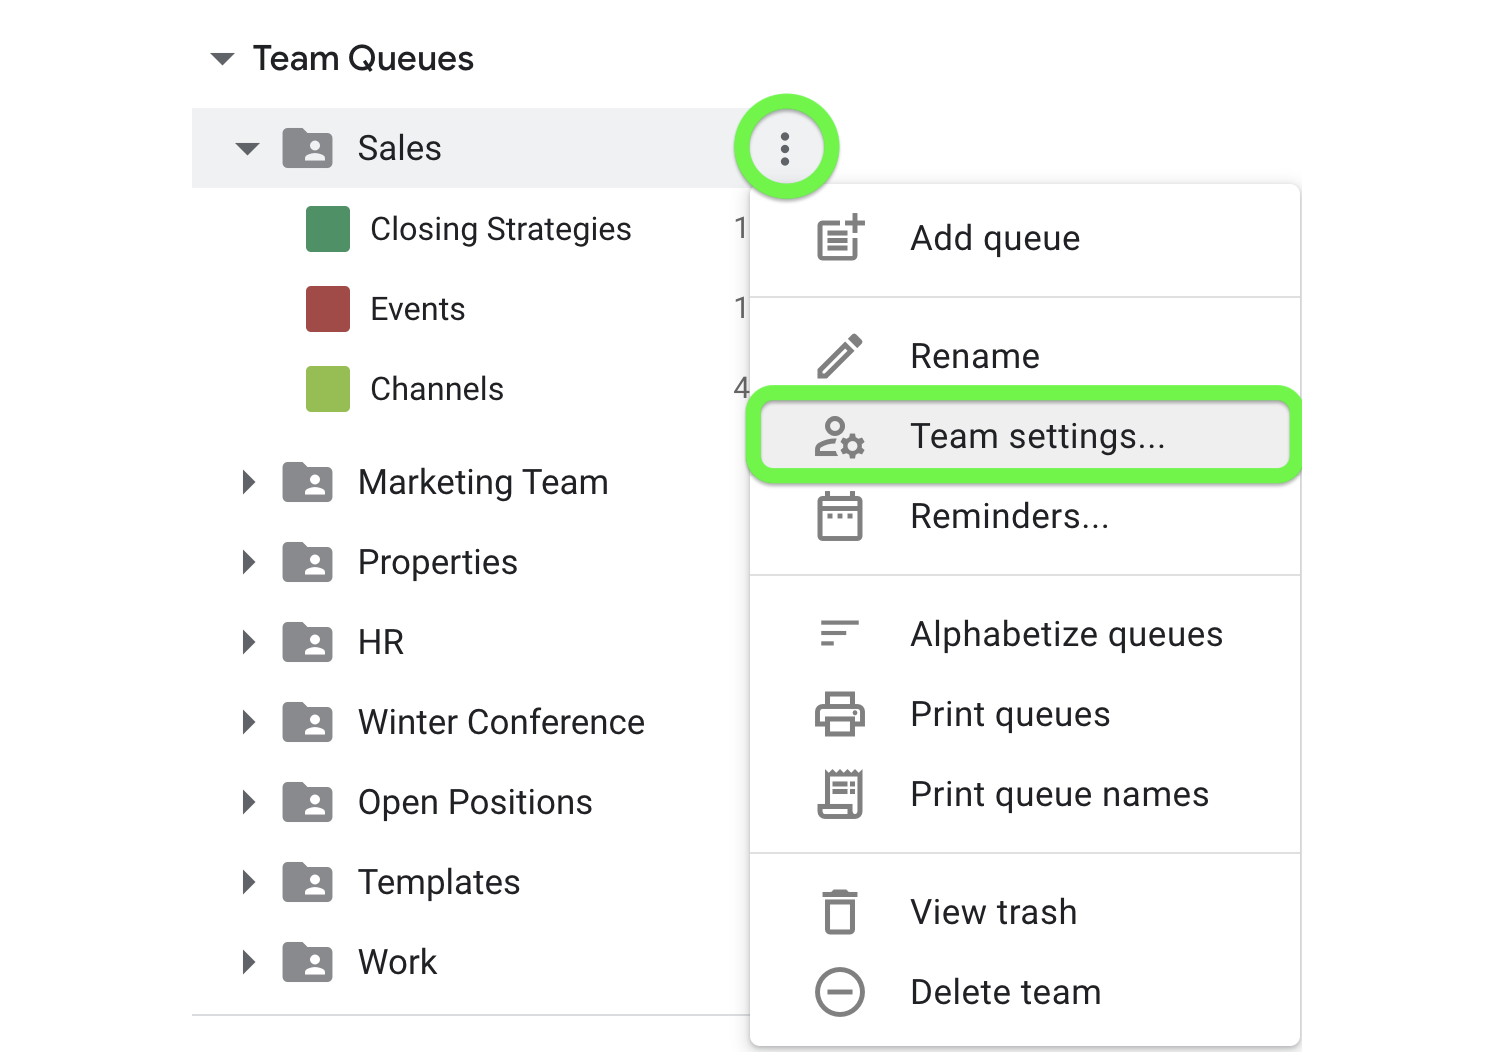 Activate Calendar syncing from Team Settings.